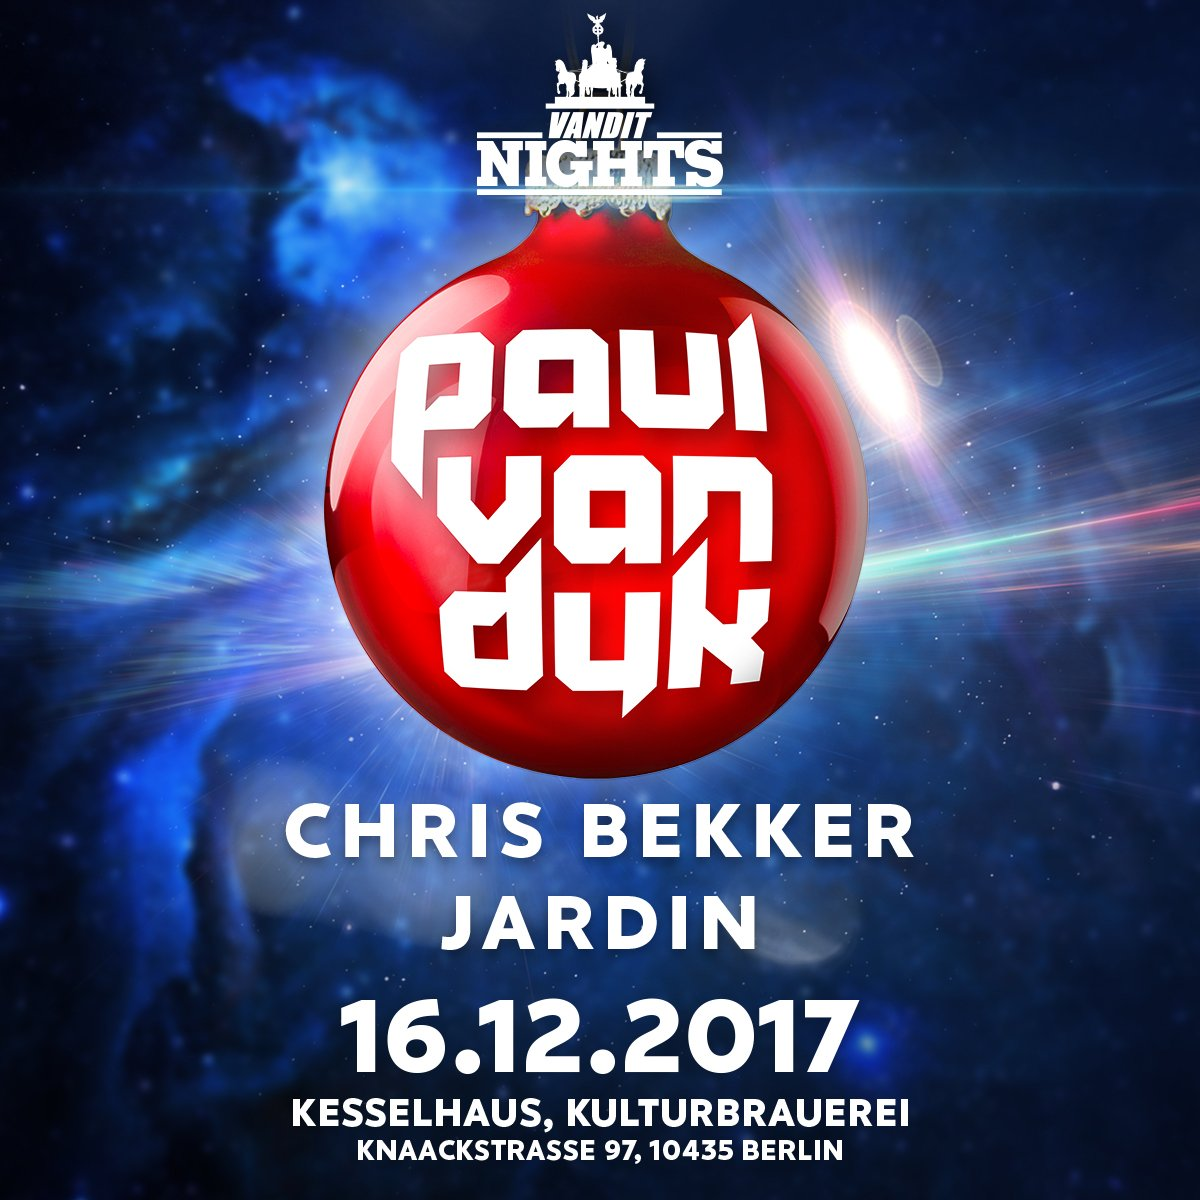 VIP tickets for my #WinterVANDITNight in Berlin are sold out! GA still available https://t.co/EWYxRH4aWy https://t.co/CgT335iHVF